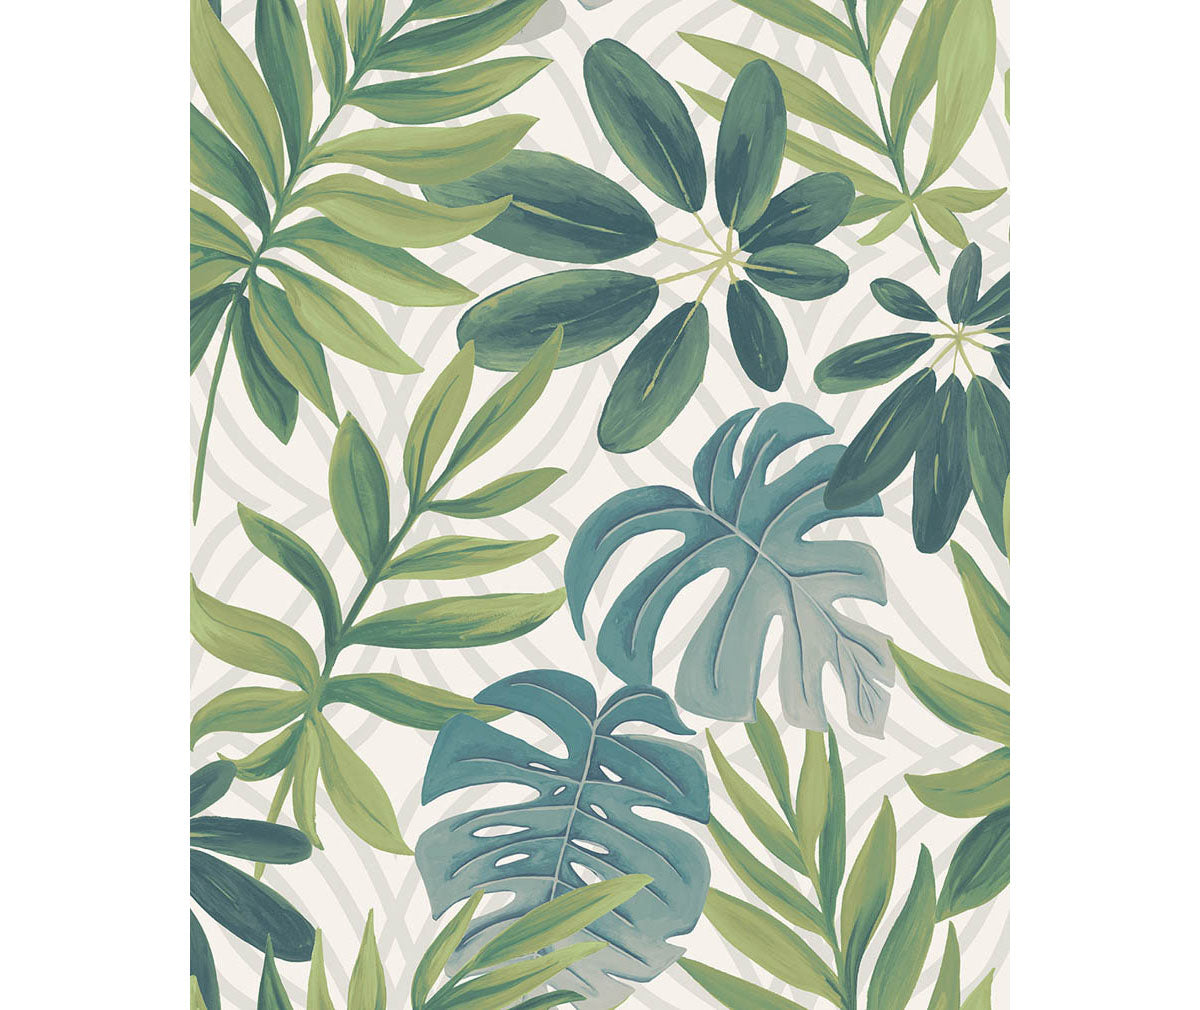 Nocturnum White Leaf Wallpaper Available At Barrydowne Paint